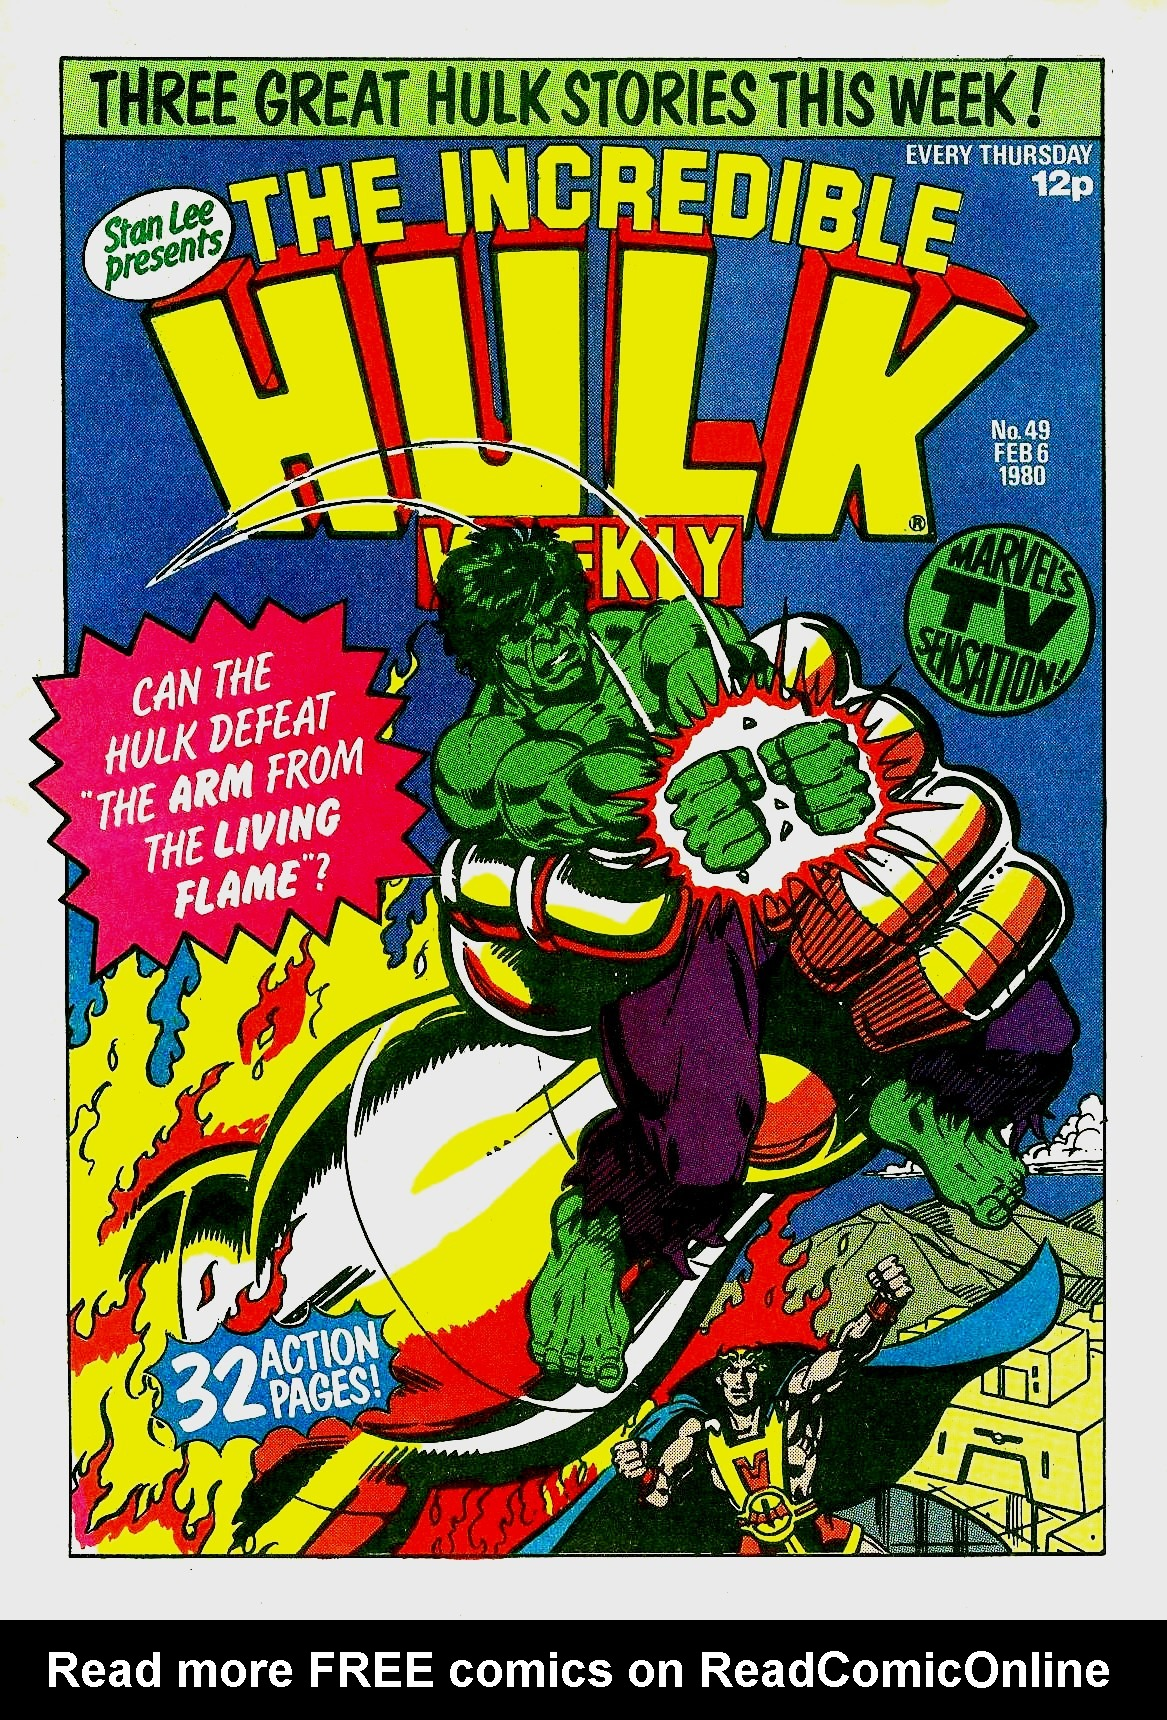 The Incredible Hulk Weekly 49 Page 1